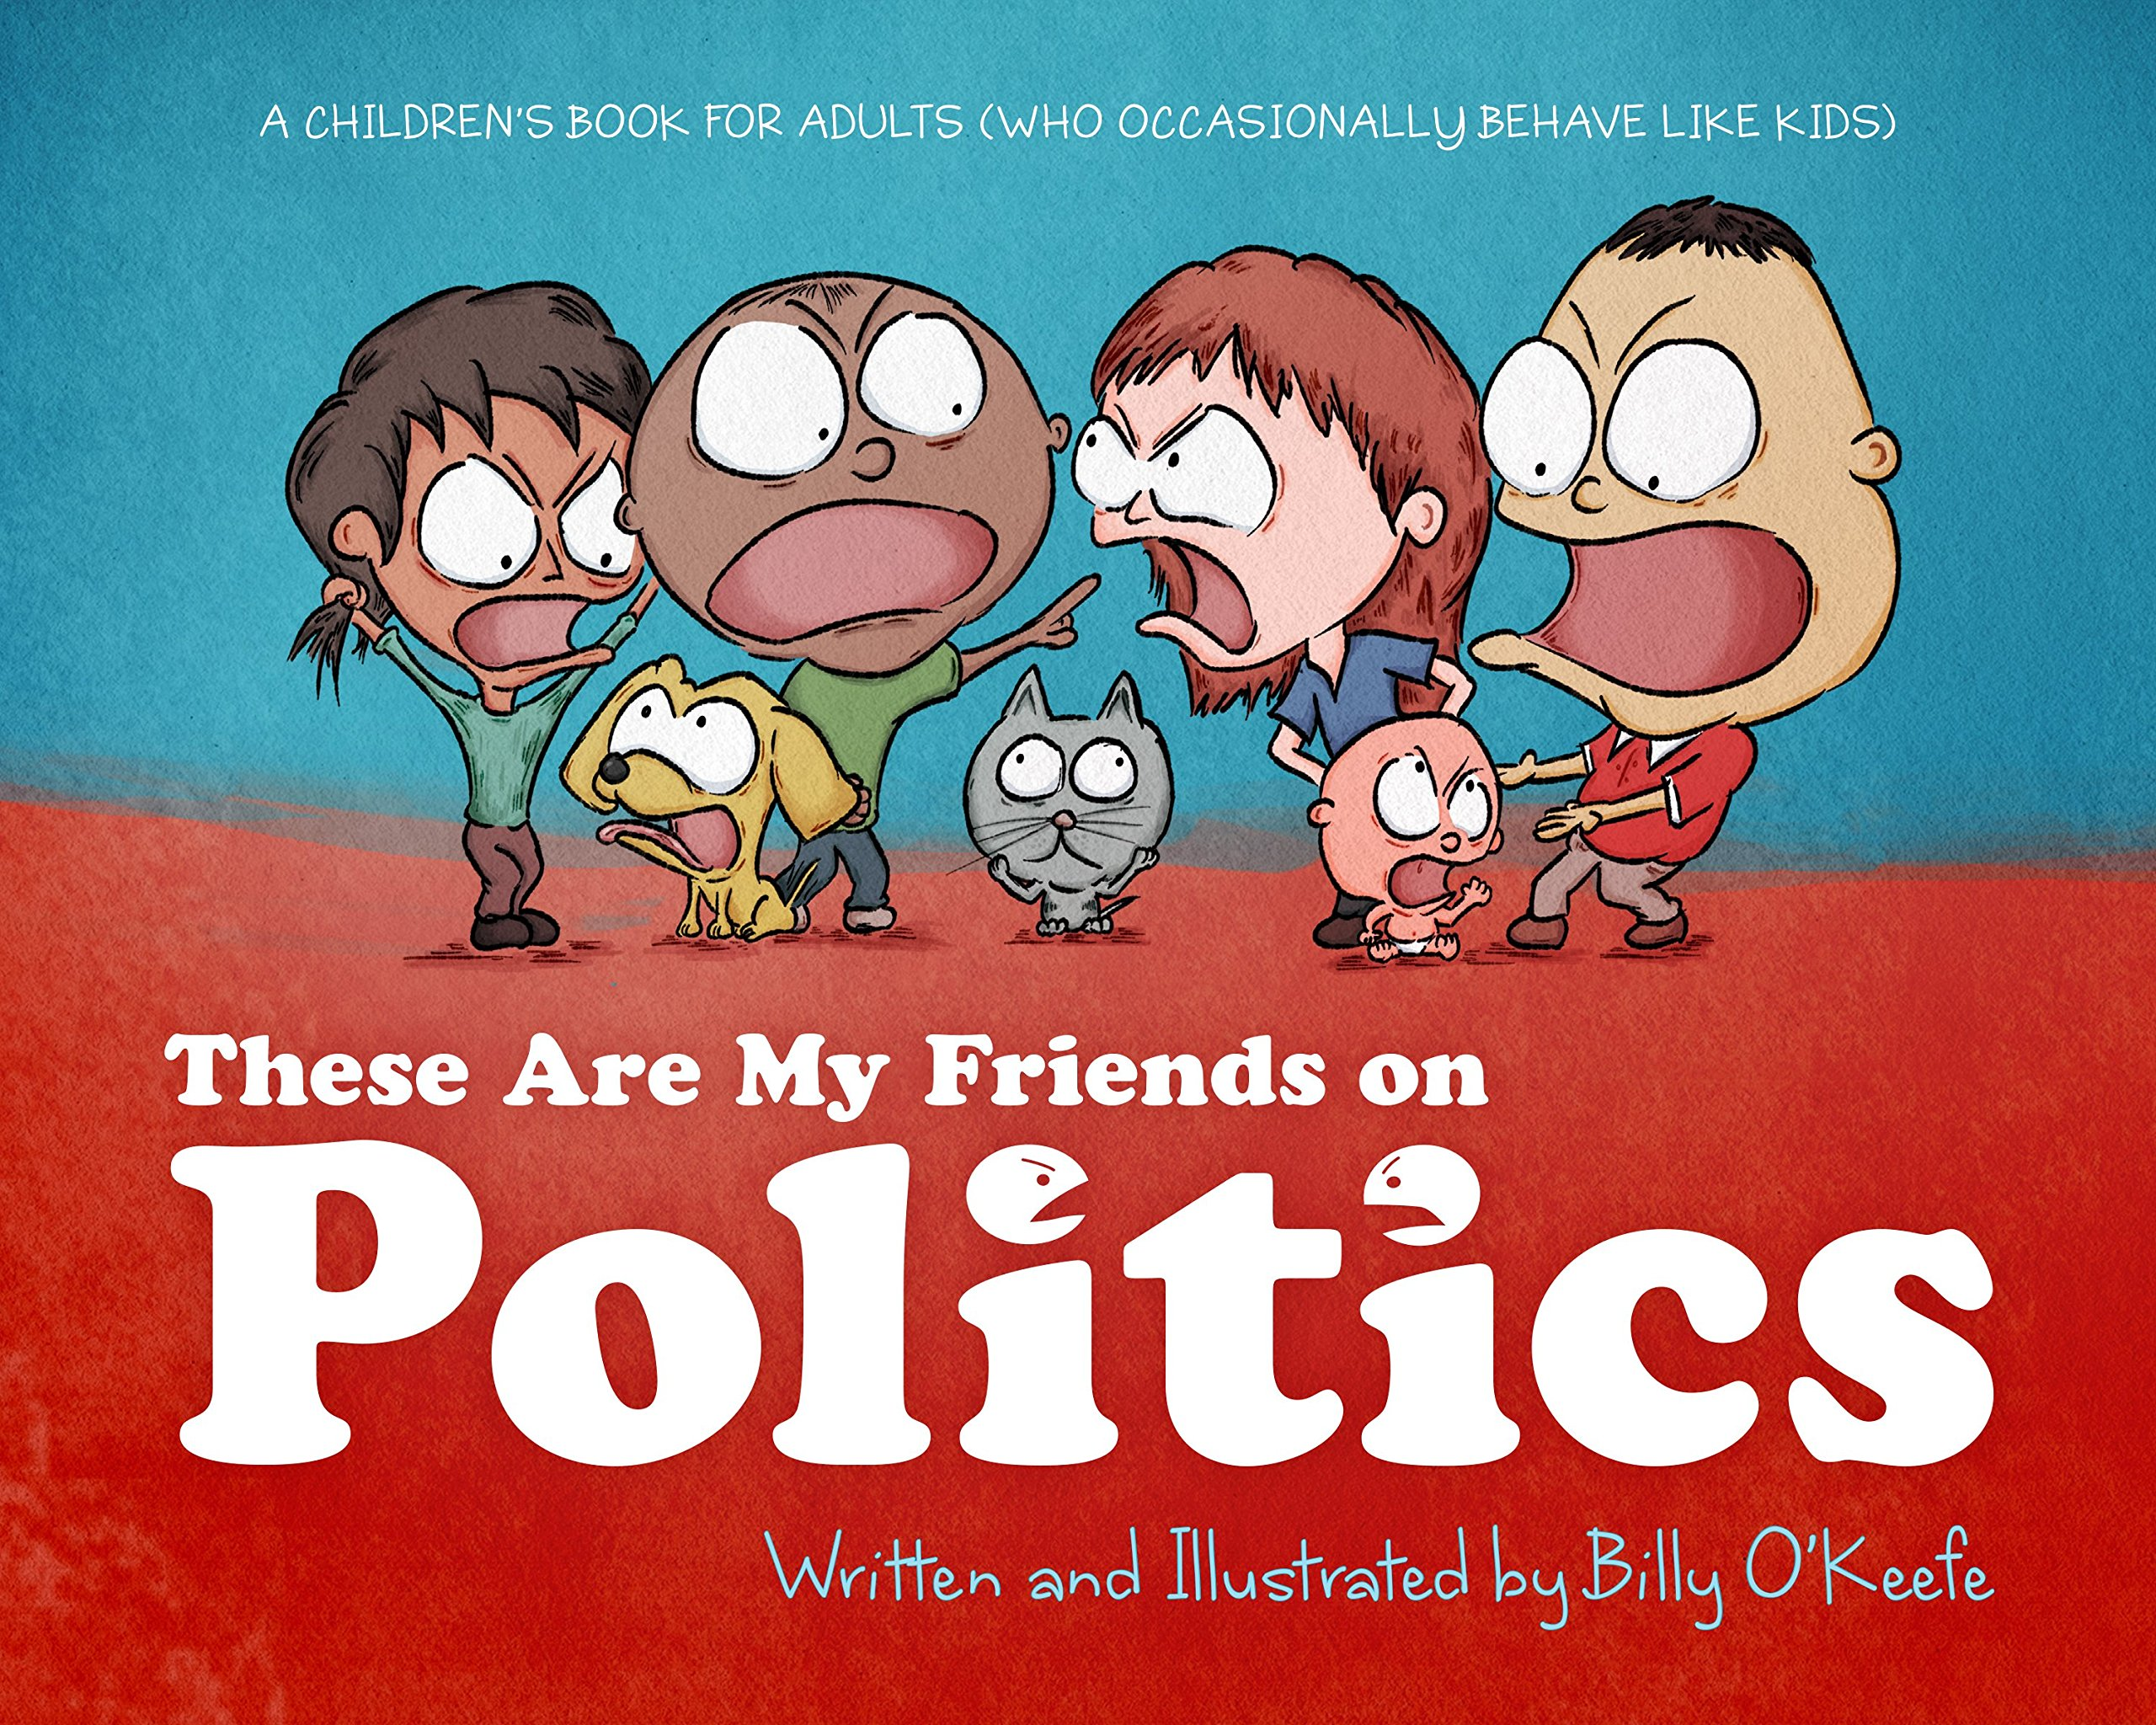 These Are My Friends On Politics A Childrens Book For Adults Who Occasionally Behave Like Kids Billy OKeefe 9781942645238 Amazon Books